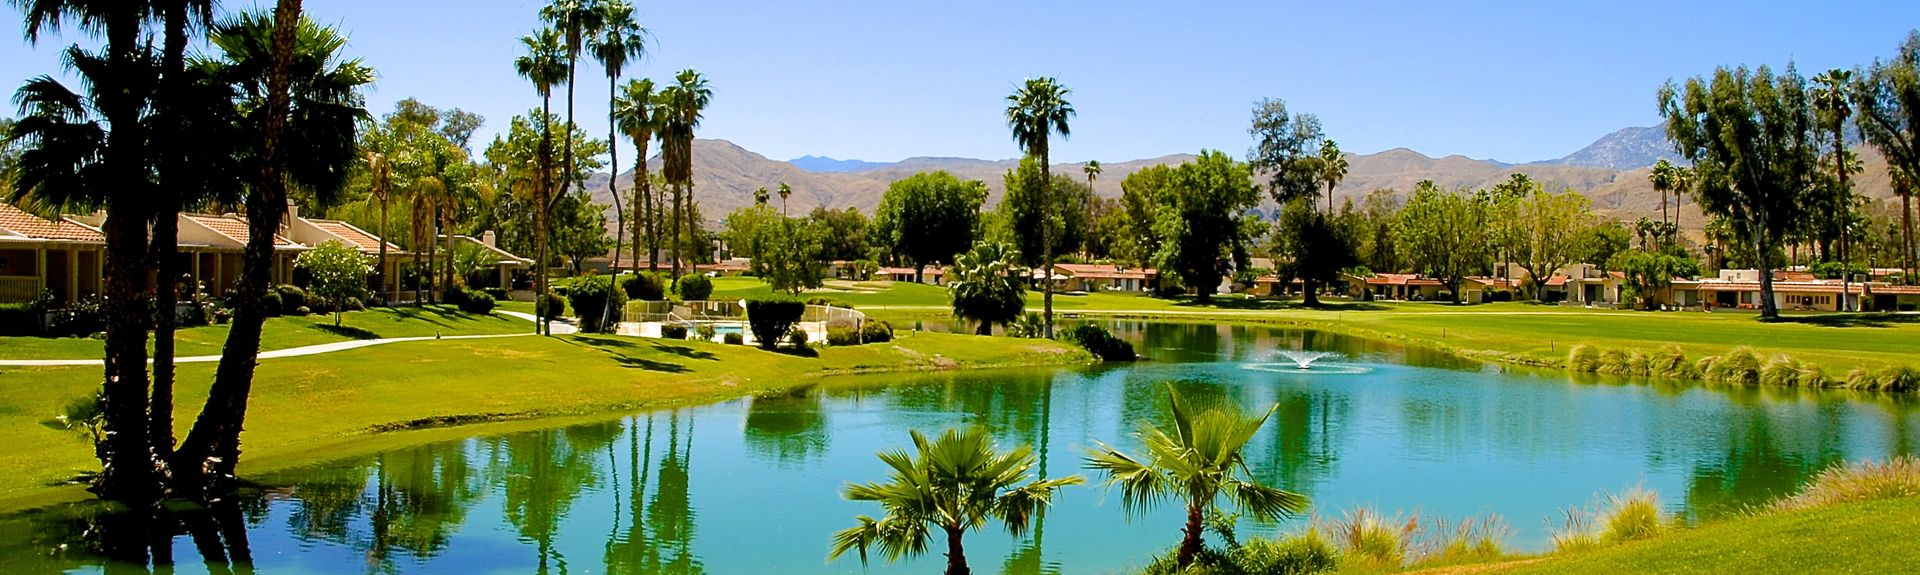 Cathedral Canyon Country Club, Cathedral City, CA, USA